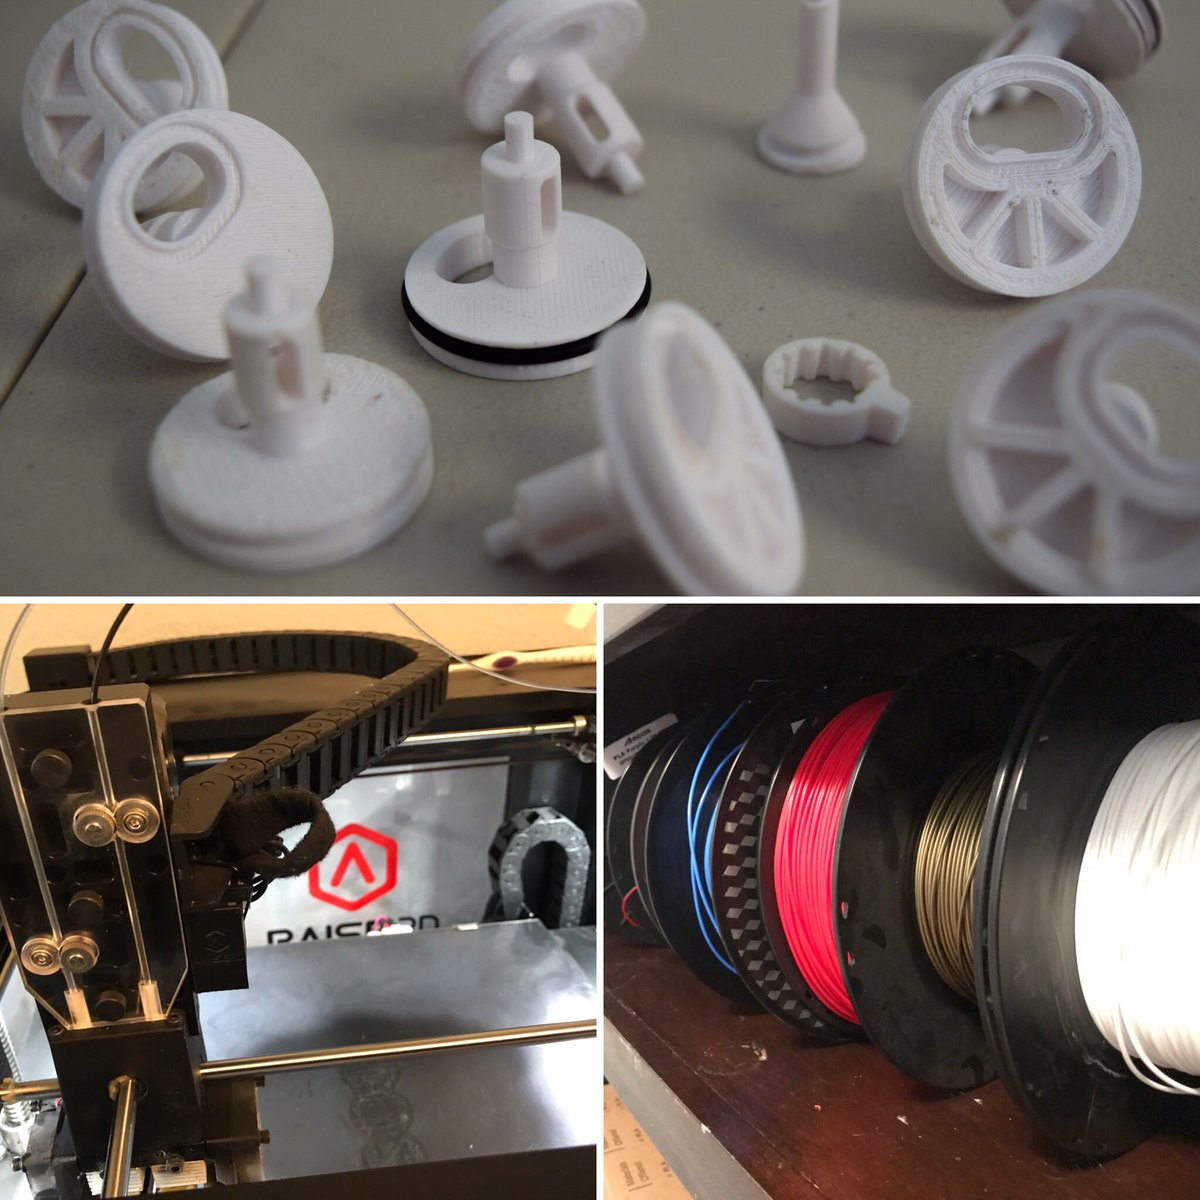 It&#39;s mind blowing that everyday consumers can manufacture in their own homes.  #Manufacturing #TechTuesday #3Dprinting #gotparts #mfg<br>http://pic.twitter.com/9wBft1R3Hg